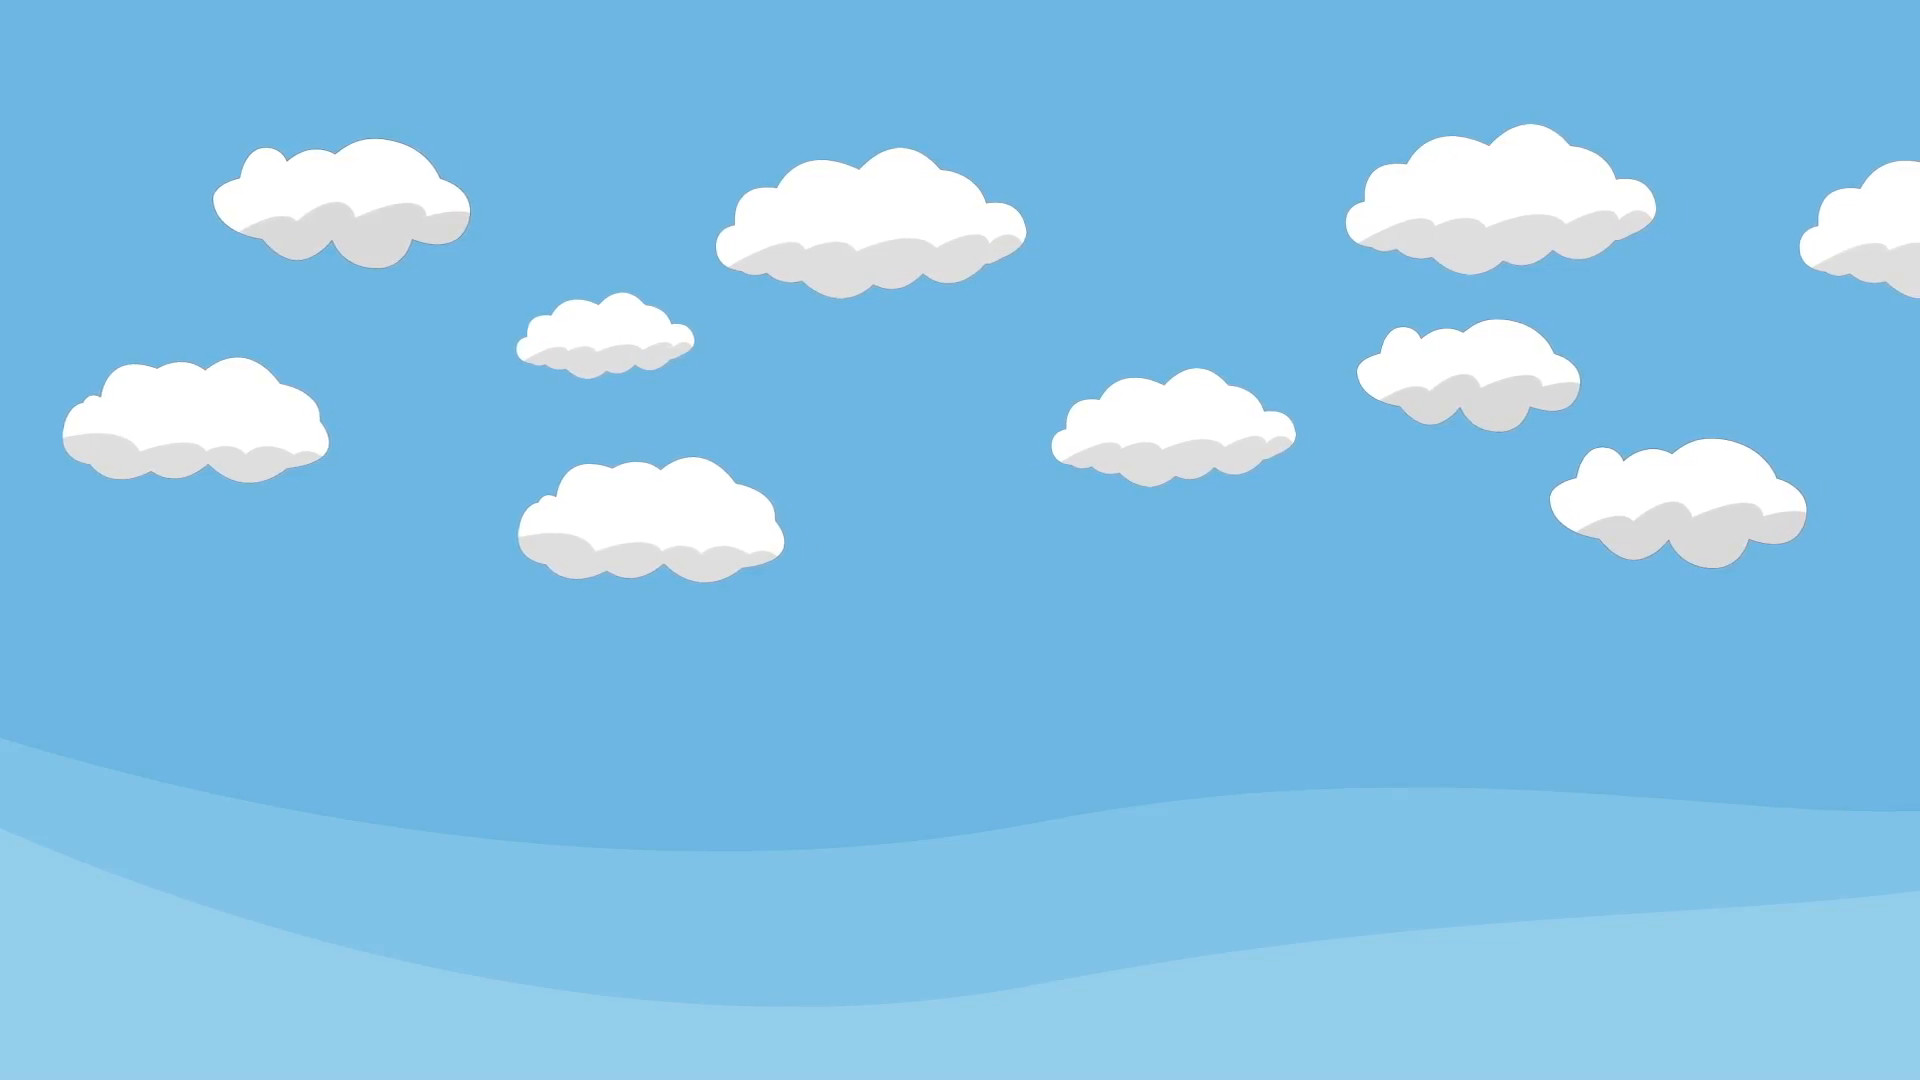 Animated Cartoon Blue Sky with White Clouds Motion Background – VideoBlocks